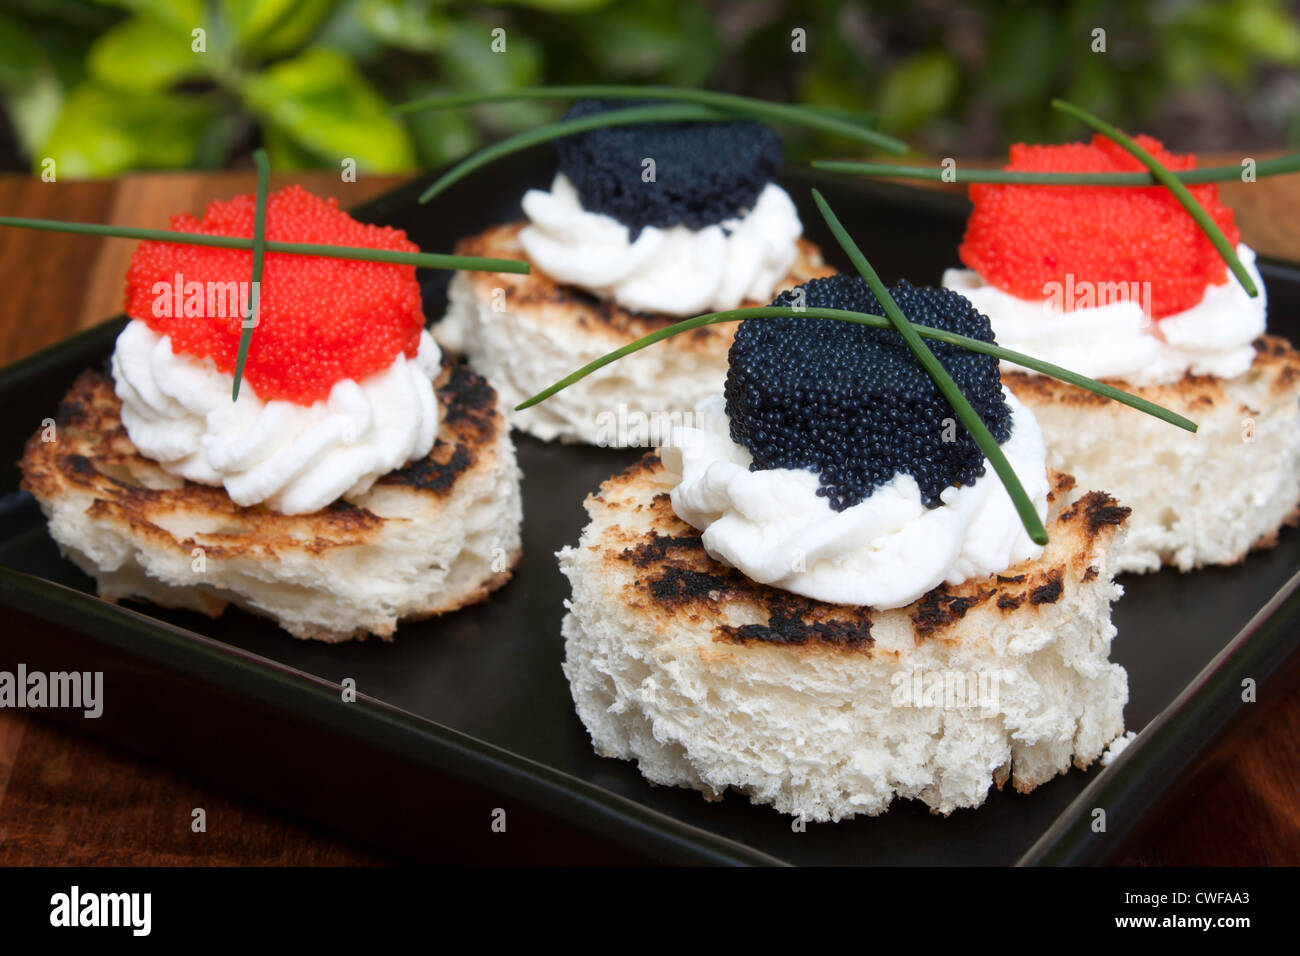 Red and black caviar canapés decorated with chives. Stock Photo